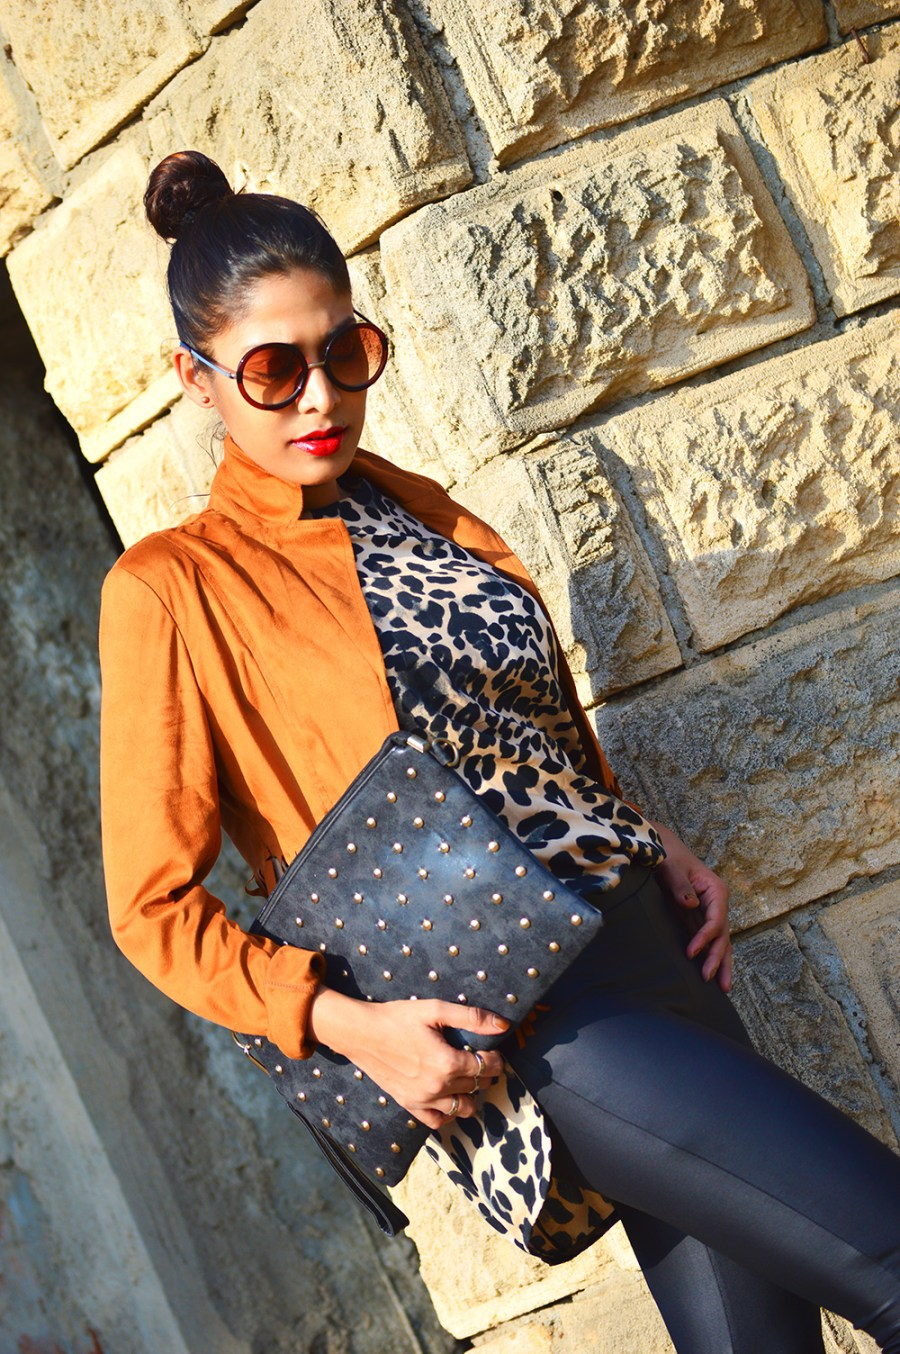 Fashion, Style, OOTD, Indian Fashion Blog, Fashion Photography, Online Fashion Store, Fringe Jacket, Leopard Print, Studed clutch, Retro sunglasses, Coated jegging, Red lipstick, Style Over Coffee, Indian Blogger, Street Style